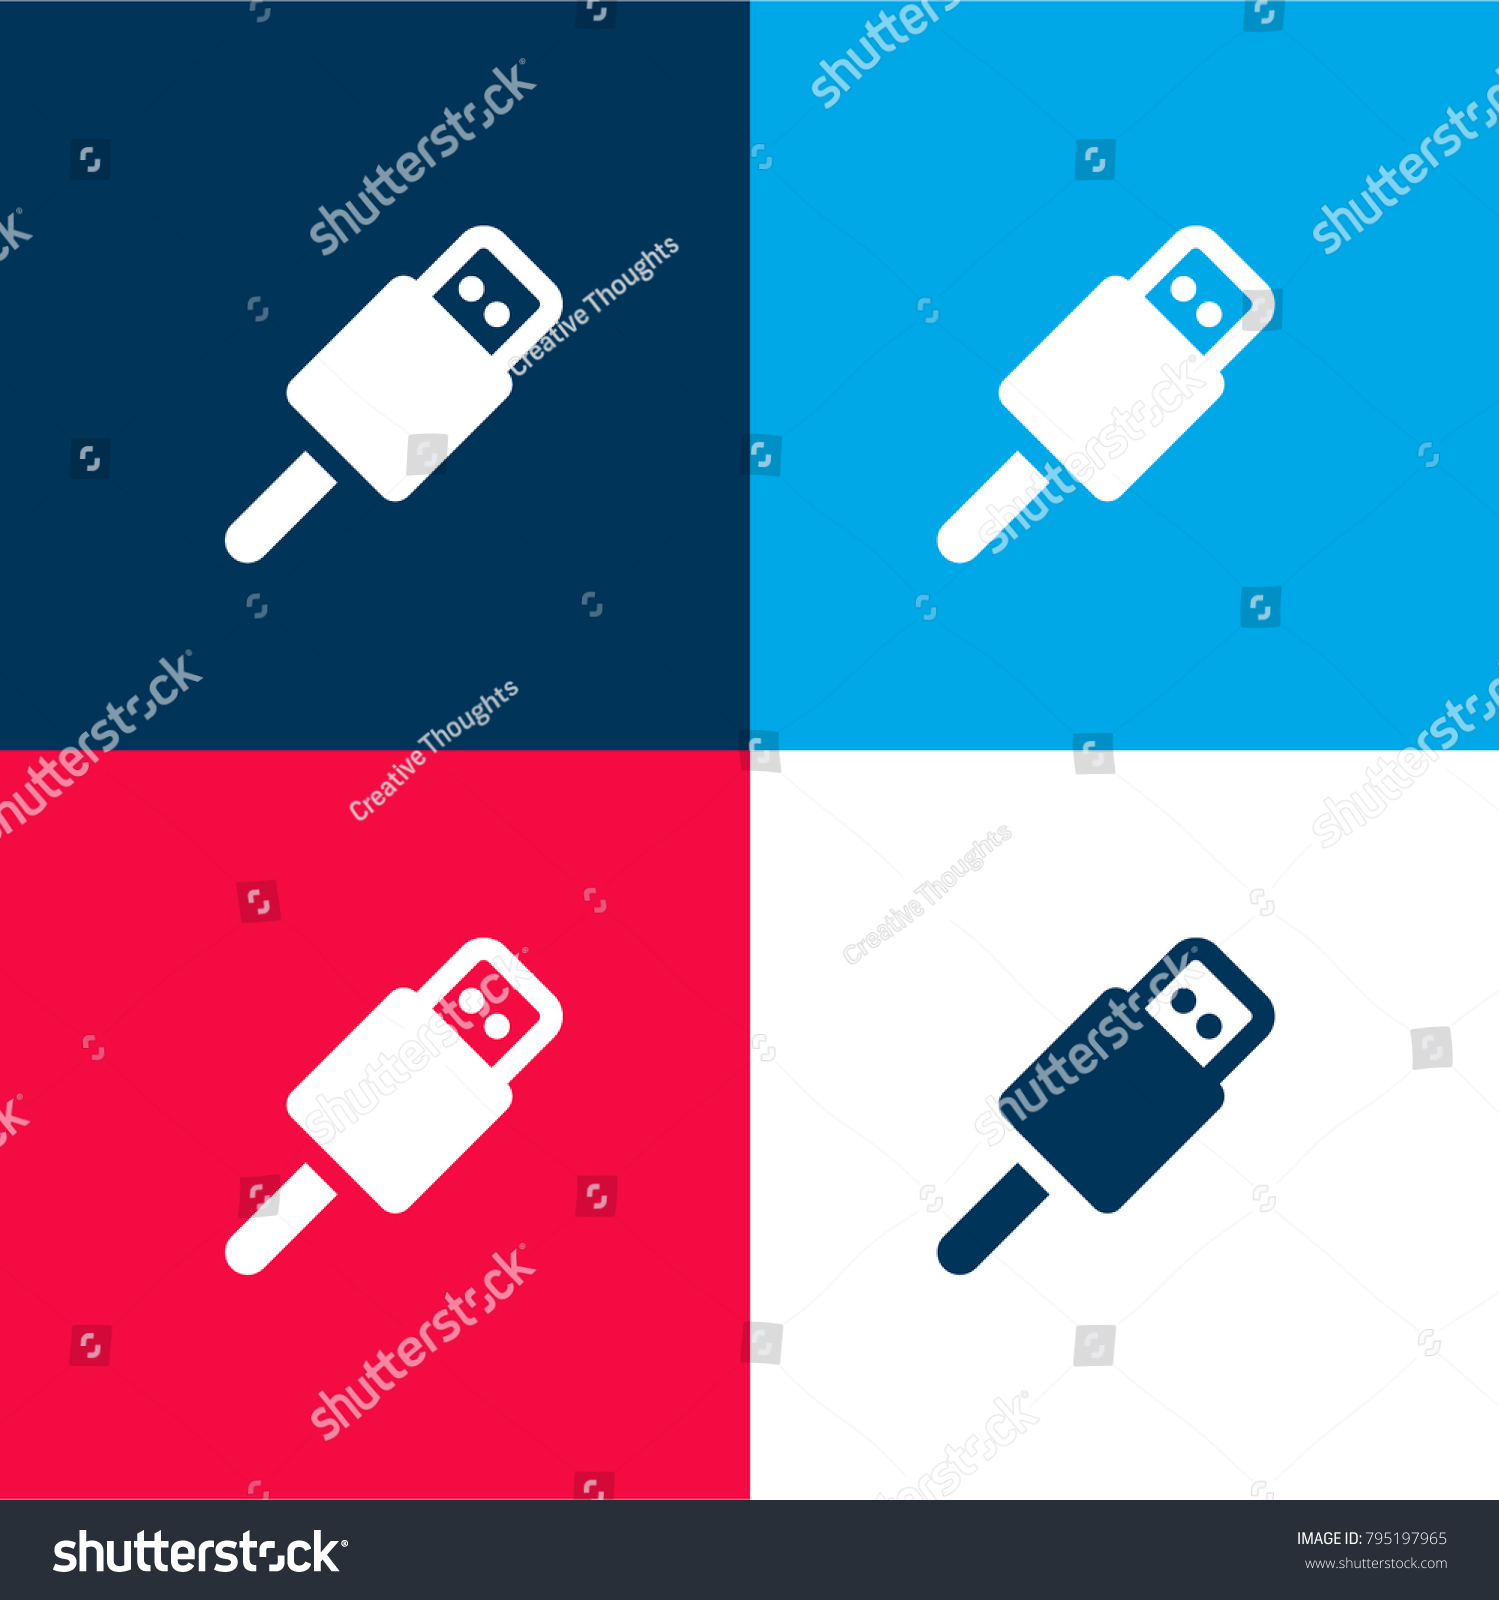 hight resolution of usb connector four color material and minimal icon logo set in red and blue